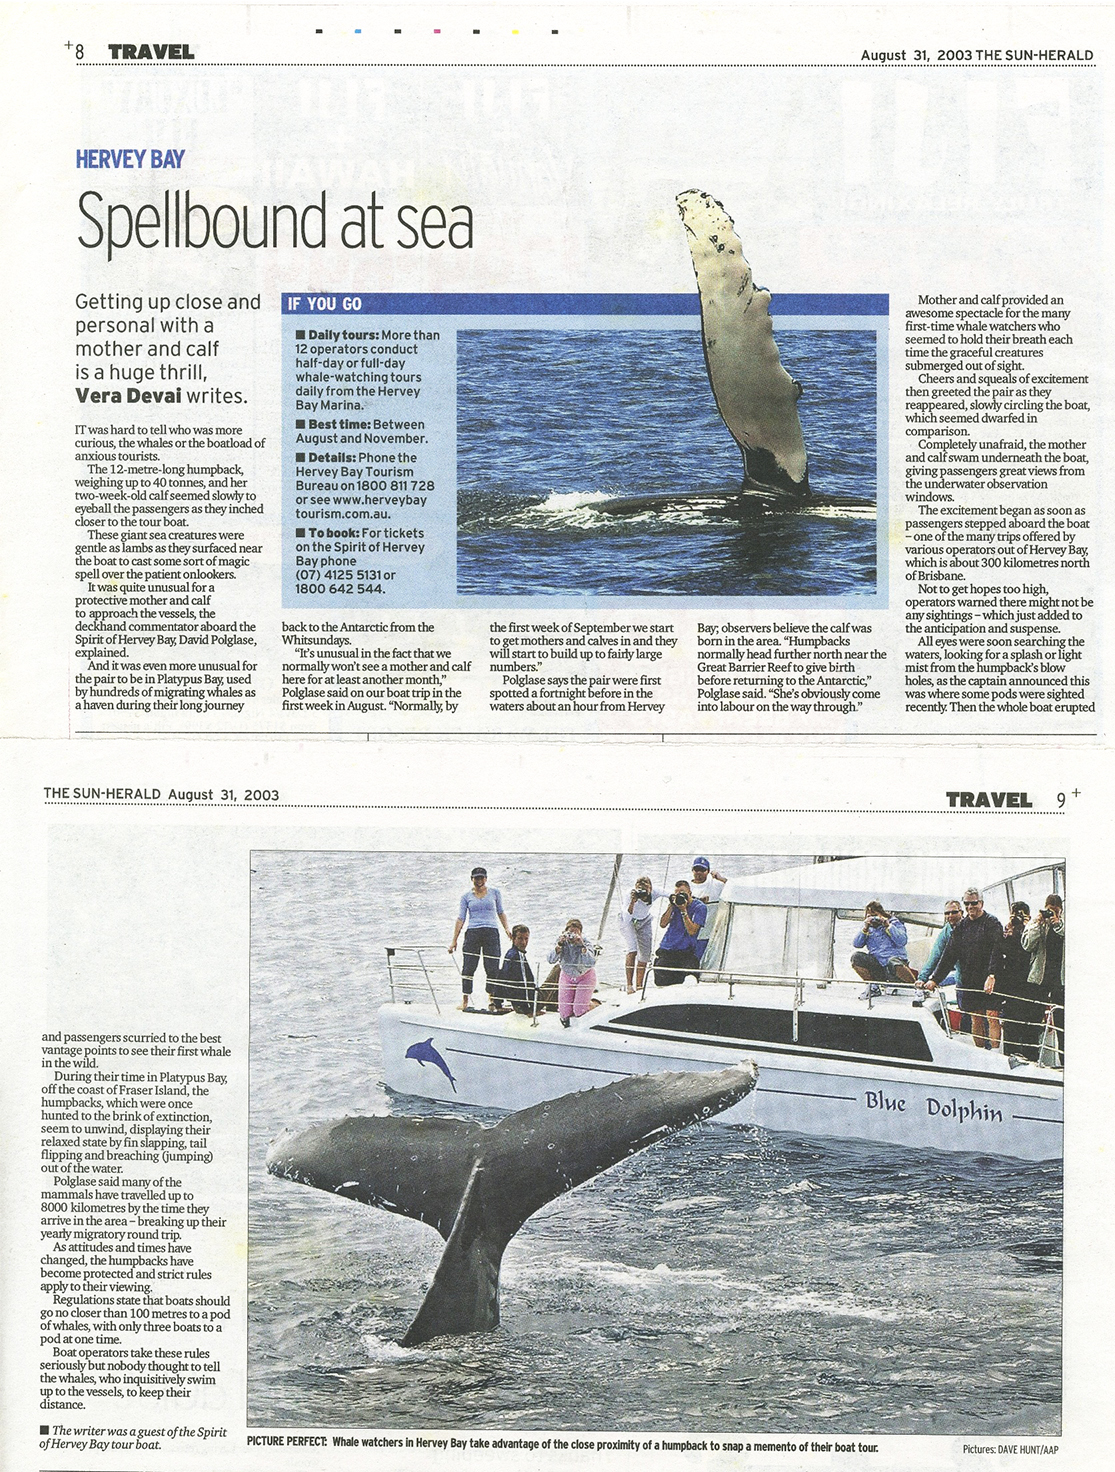 TRAVEL Newspaper Article